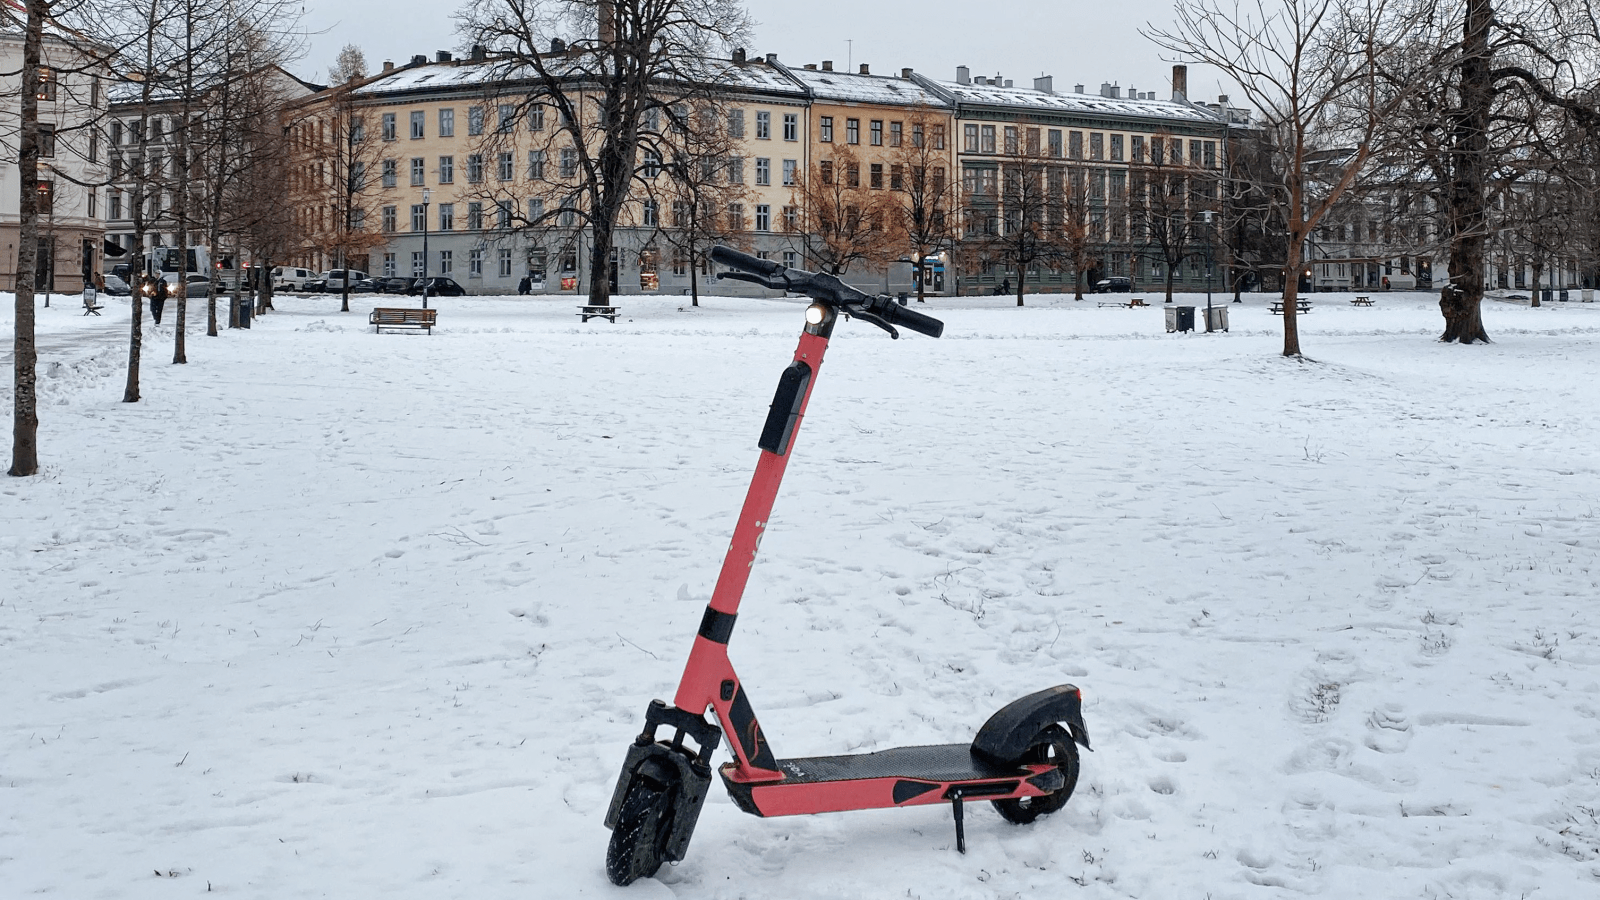 Electric Scooter in Vancouver / eScooter in snow